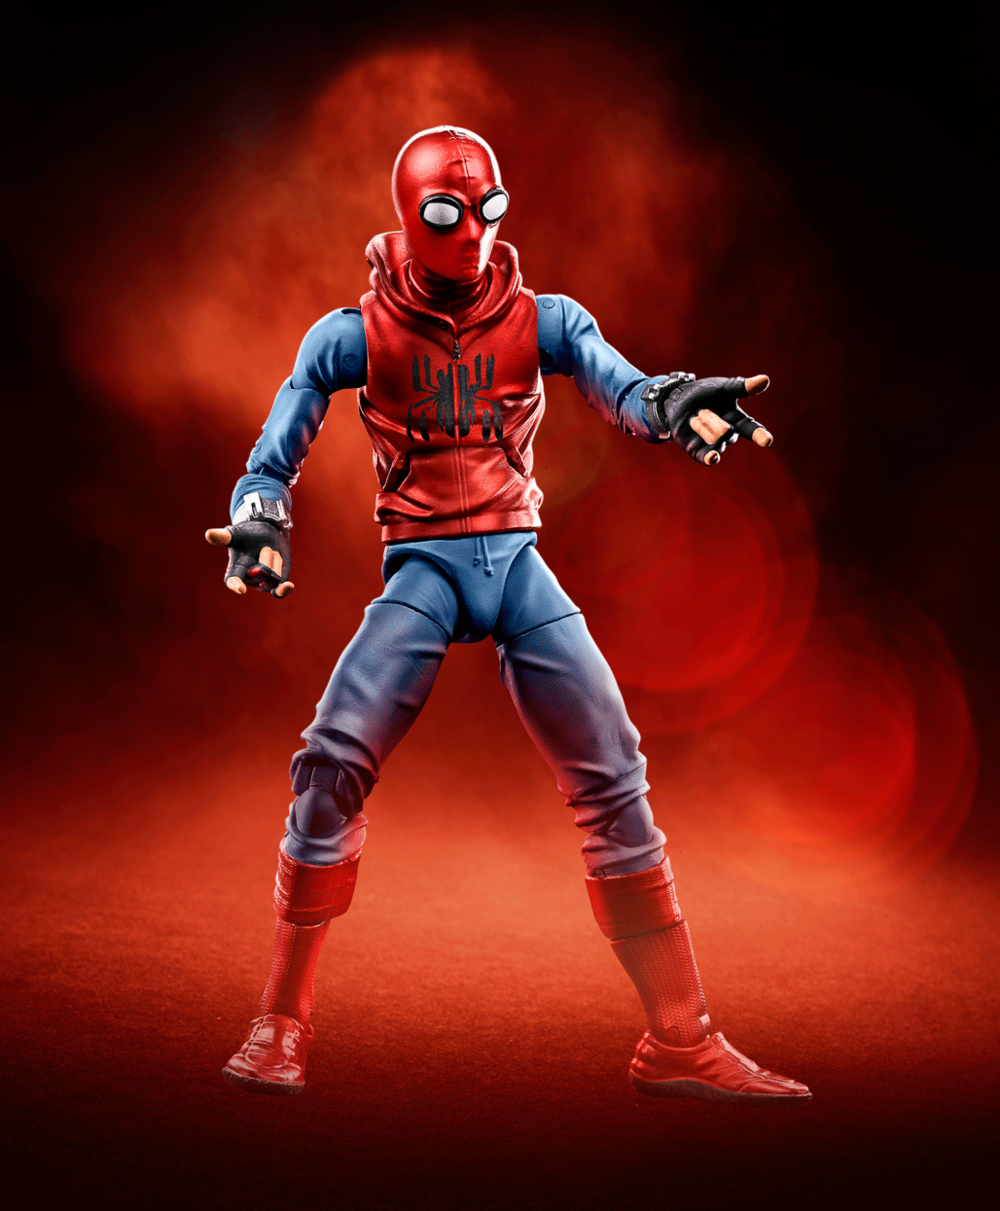 check-out-tony-starks-ultimate-iron-man-armor-from-spider-man-homecoming2